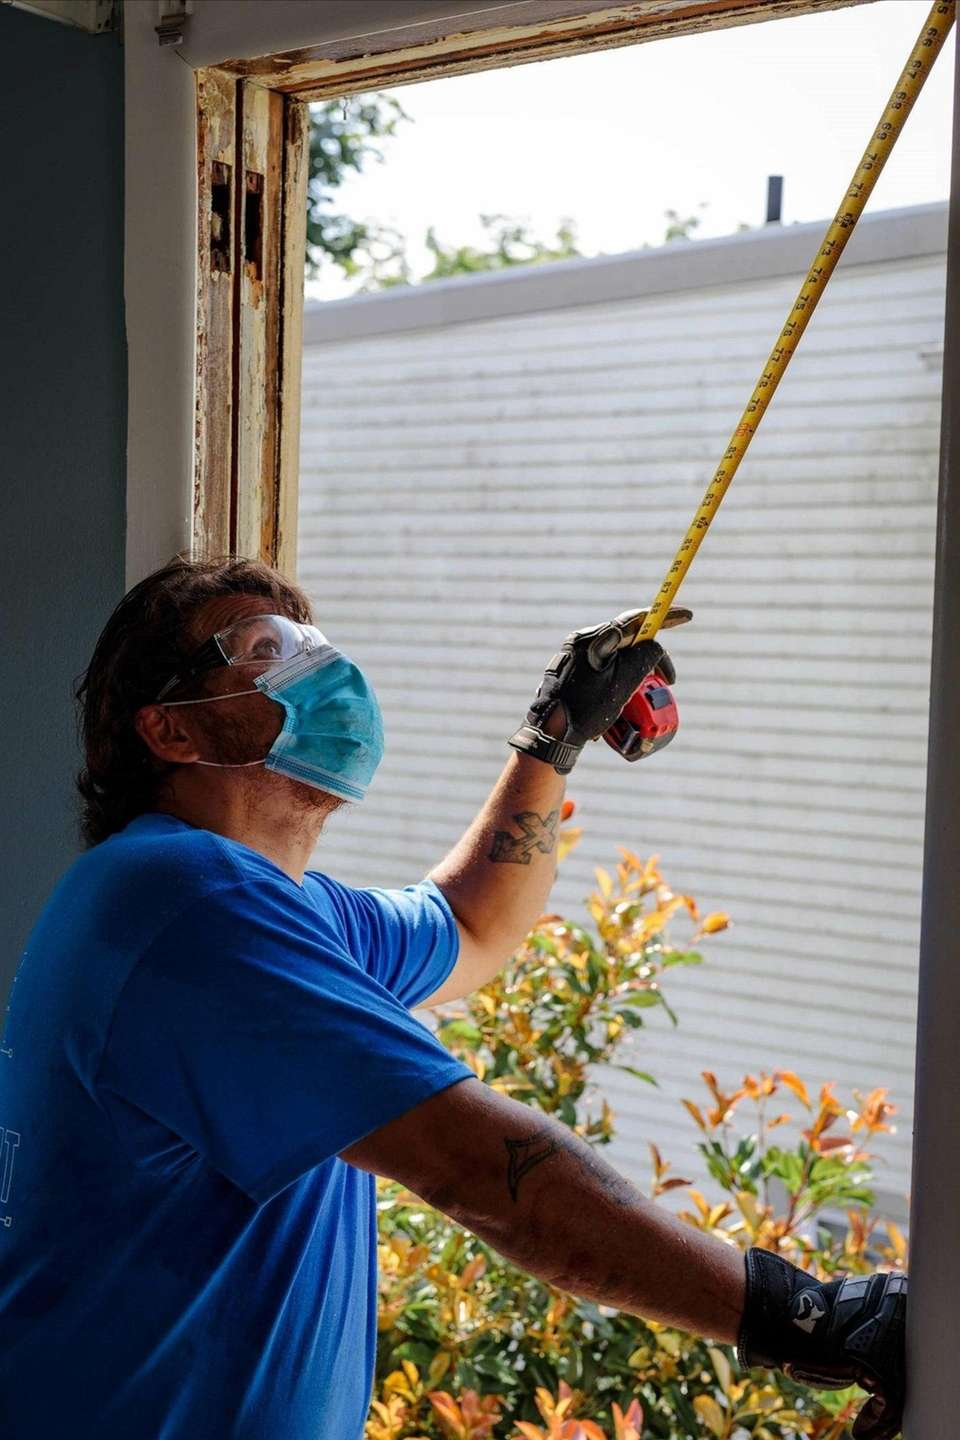 A Power Home Remodeling operations team member measures